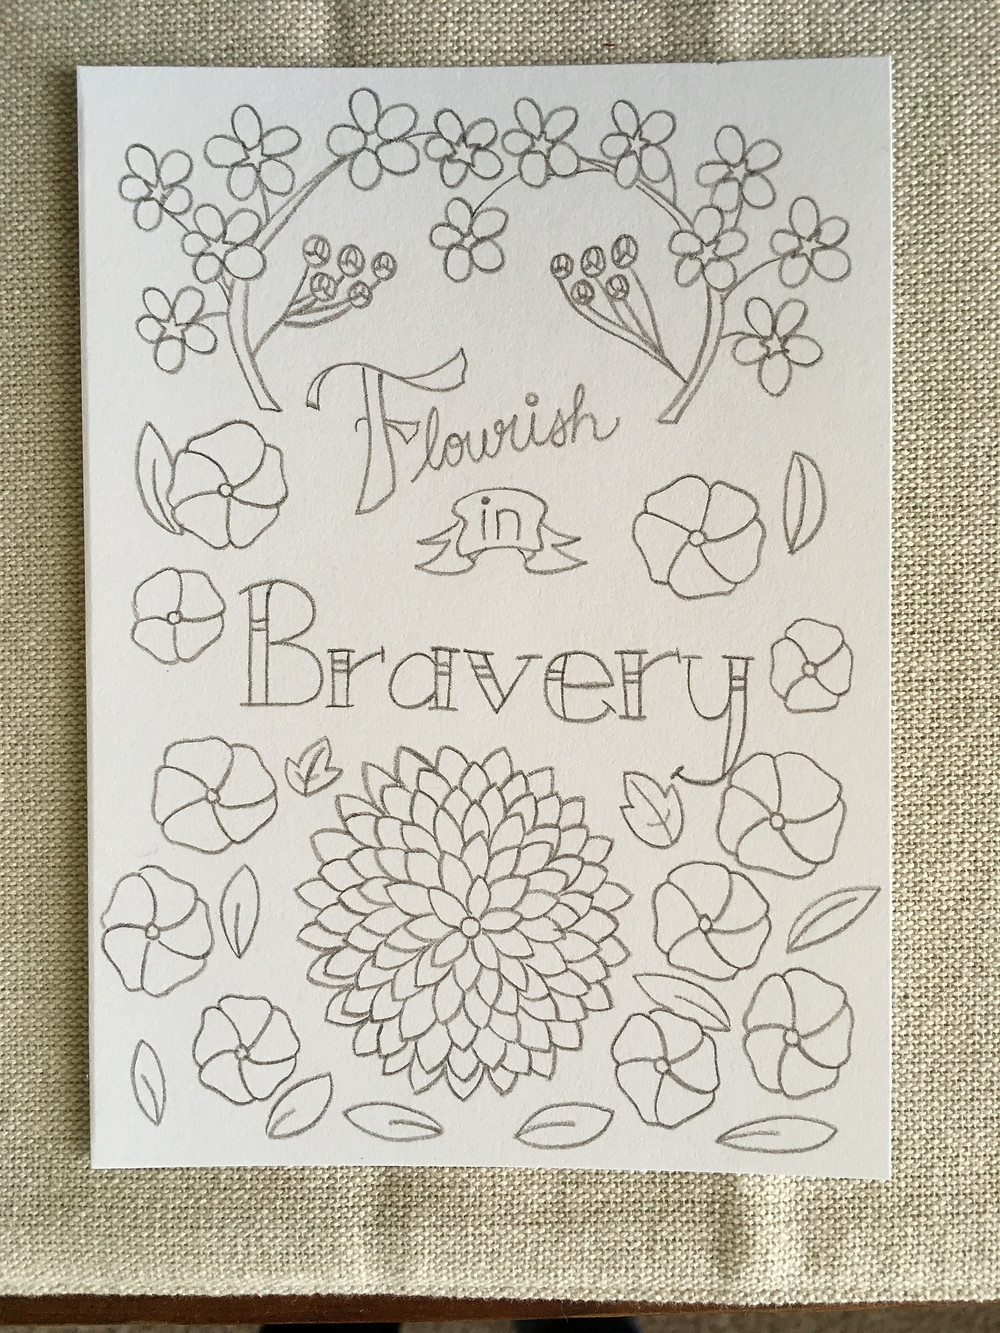 Flourish in Bravery Coloring Card by Stephanie Ascough